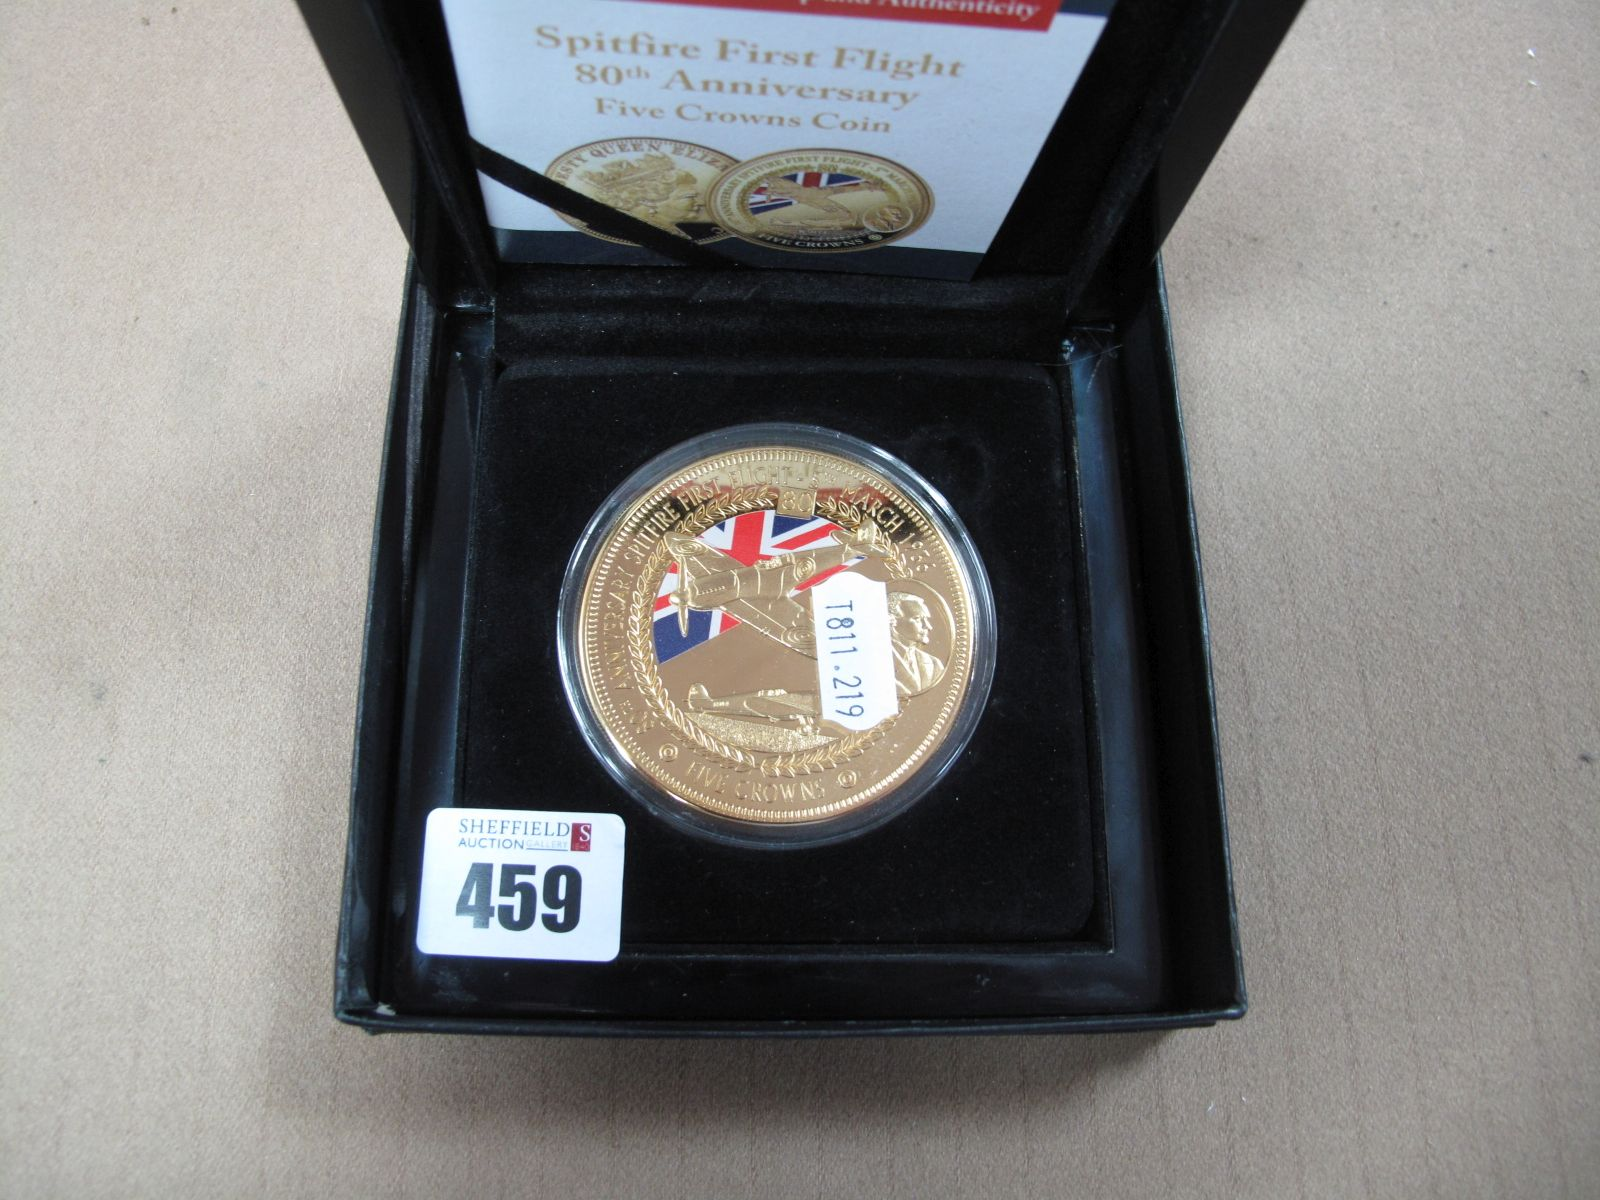 The Bradford Exchange 2016 Spitfire First Flight 80th Anniversary Commemorative Five Crowns Coin,